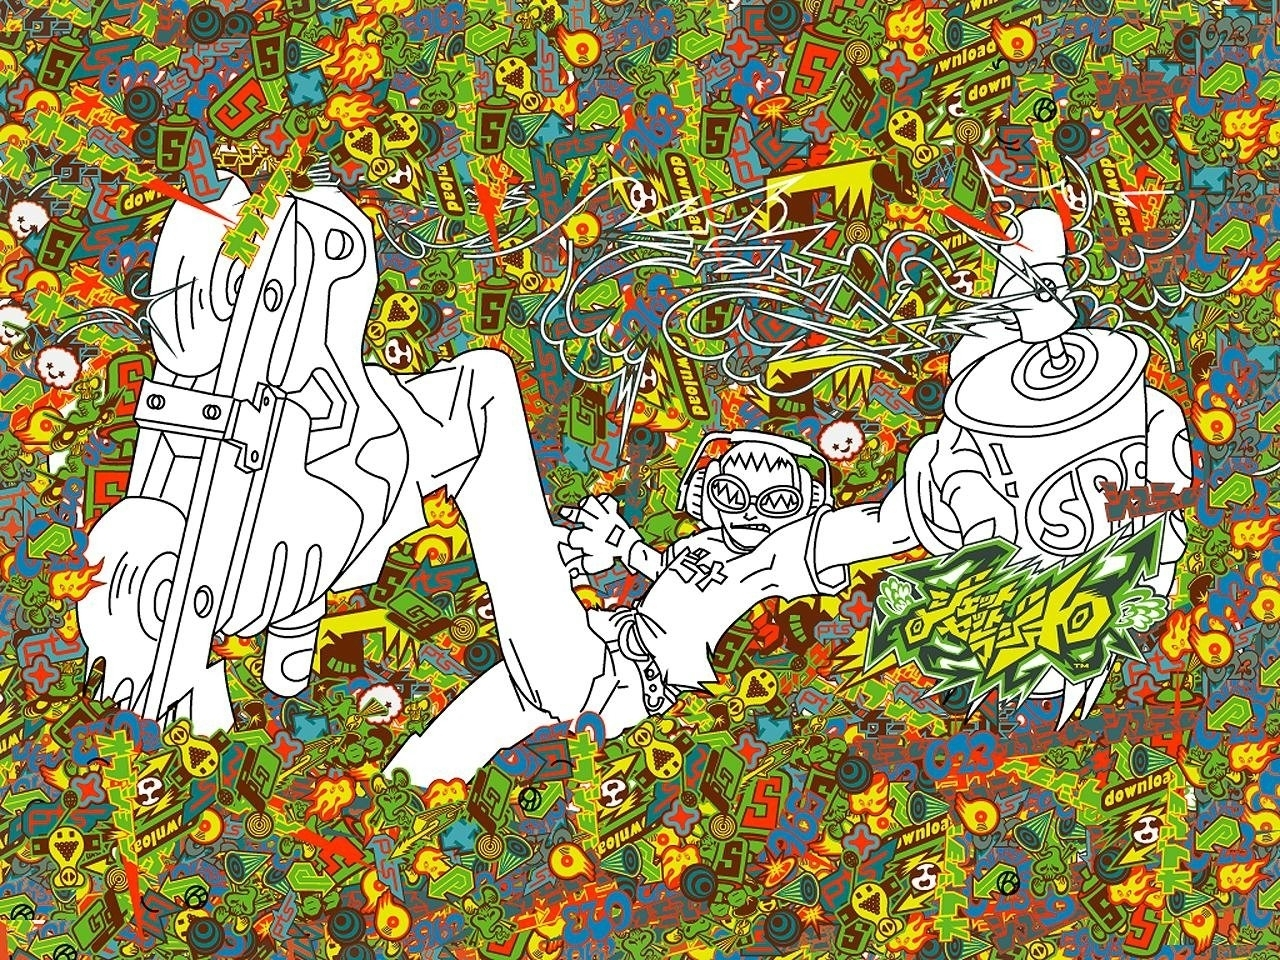 11 jet set radio hd wallpapers | background images - wallpaper abyss